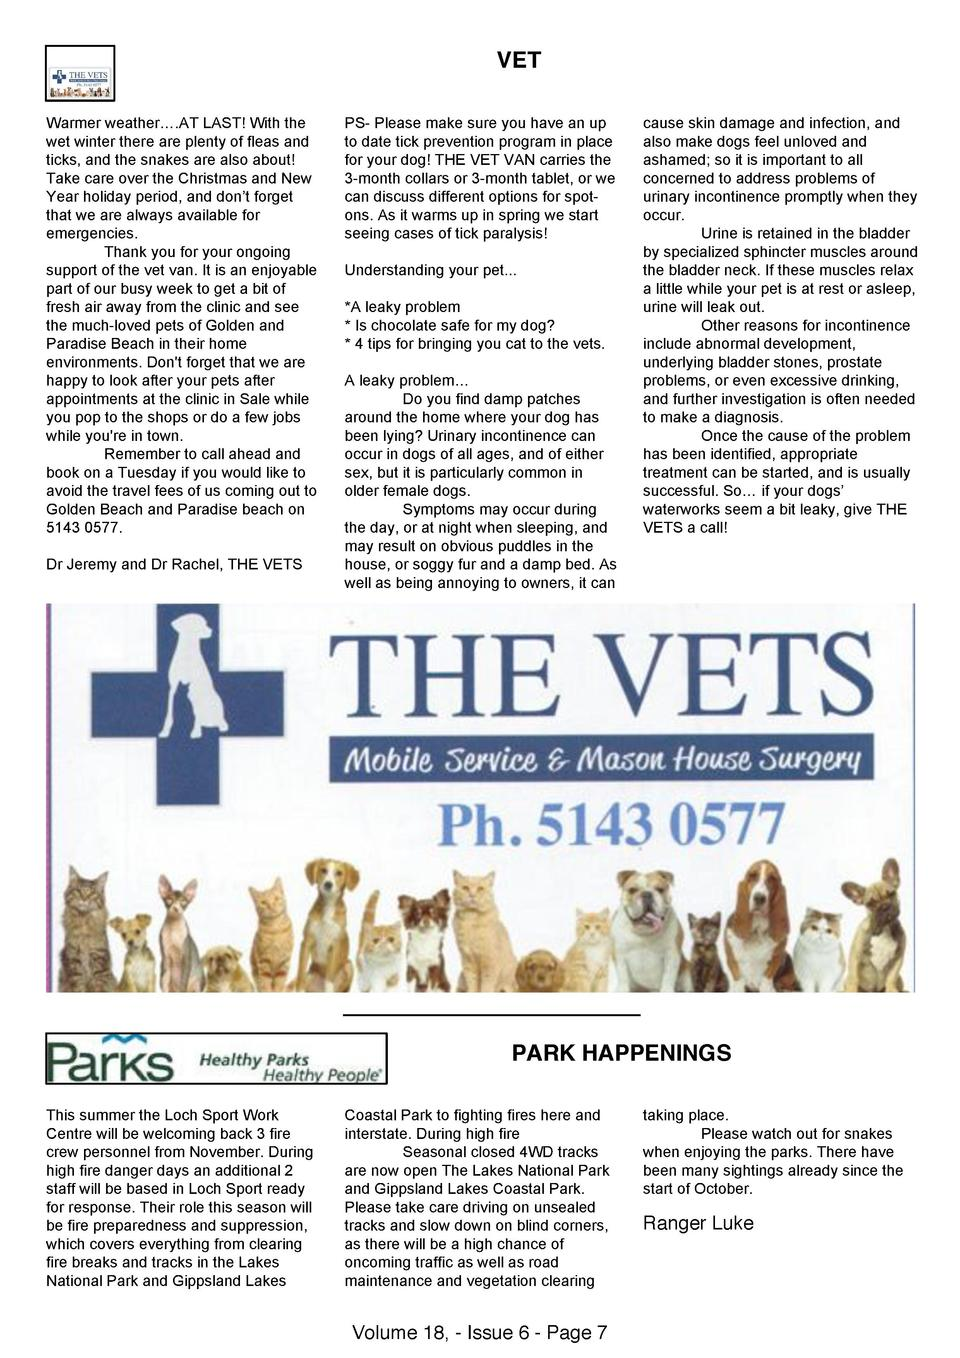 VET Warmer Weather AT LAST With The Wet Winter There Are Plenty Of Fleas And